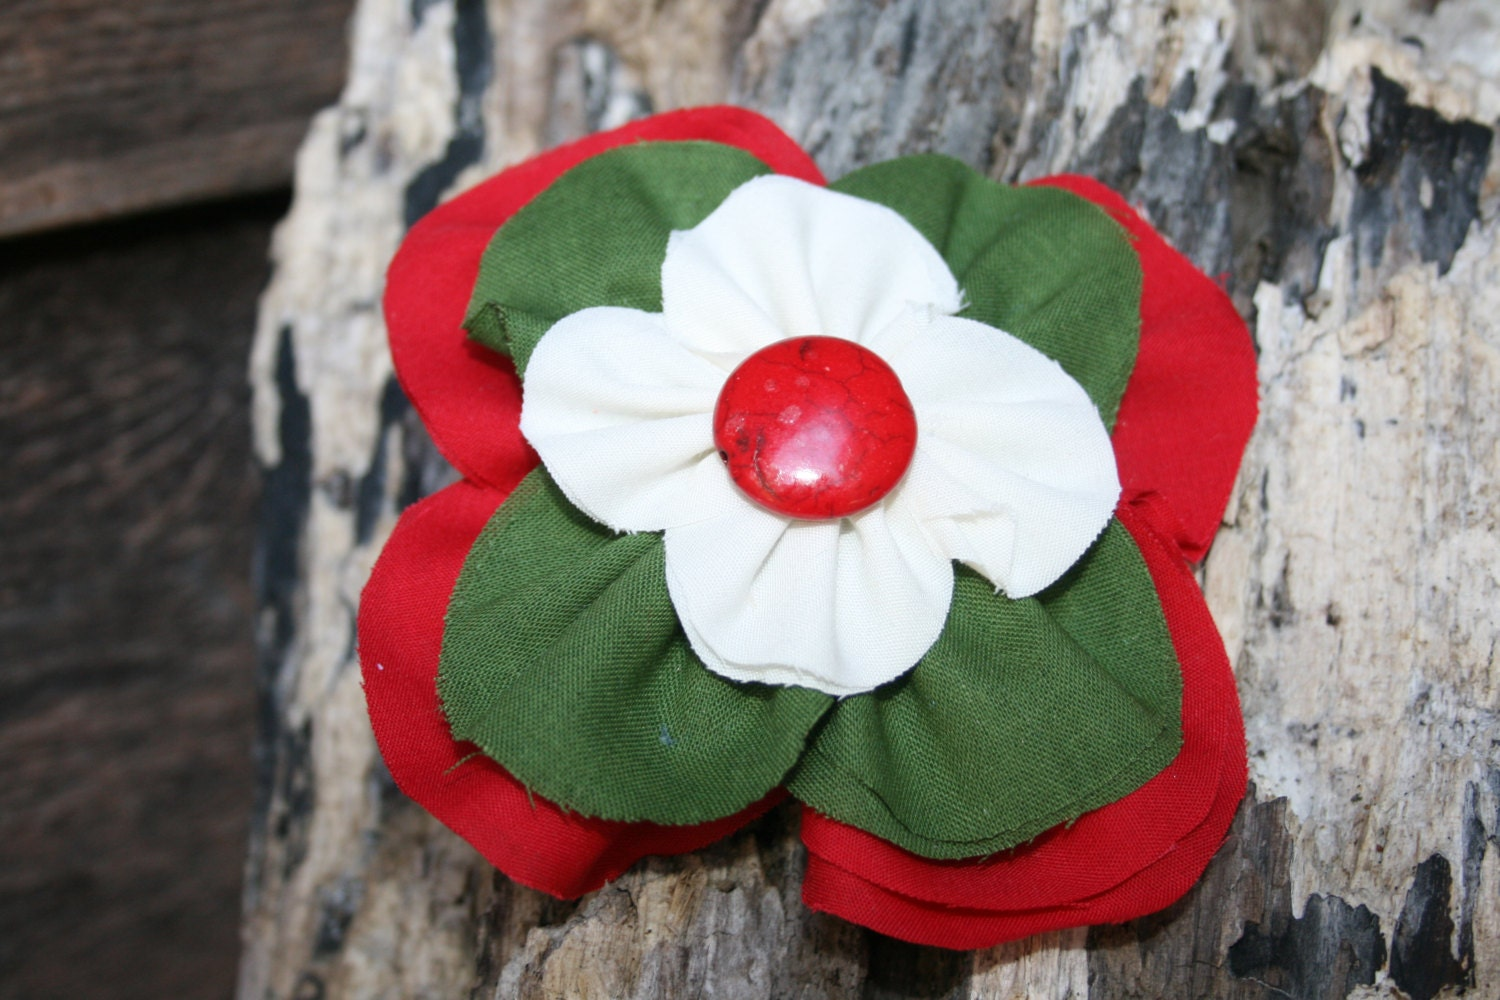 Handmade red, green and cream stacked flower with red button in the middle. - RockabillyBabyPlace